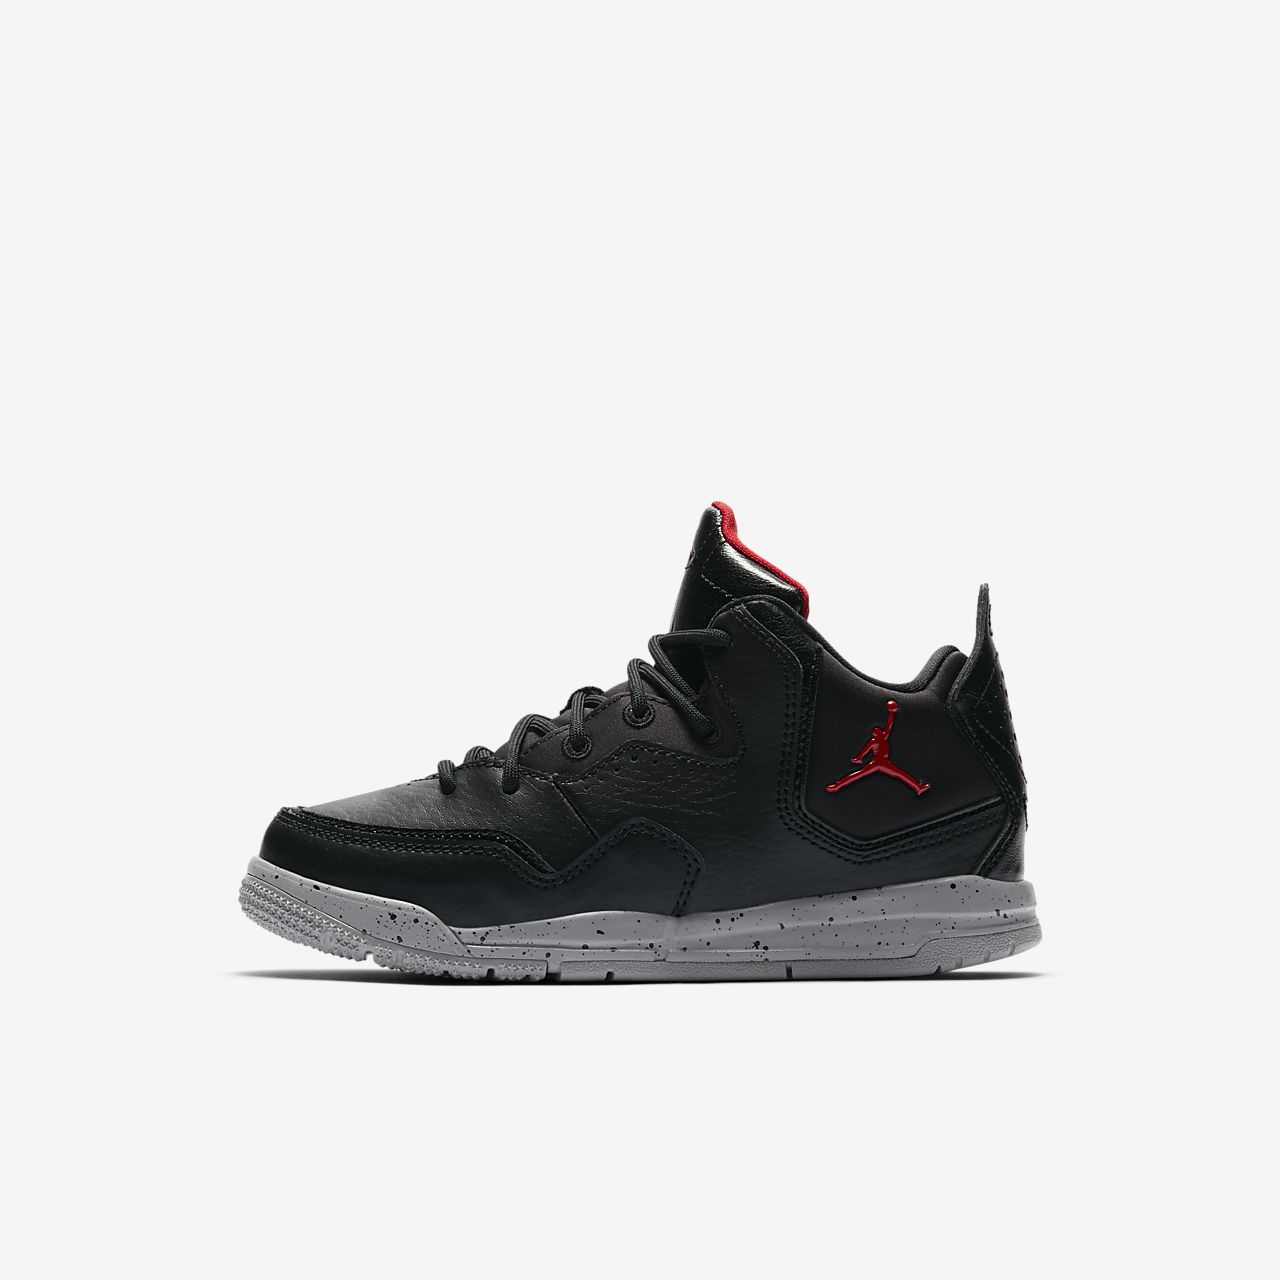 Jordan Courtside 23 / Black